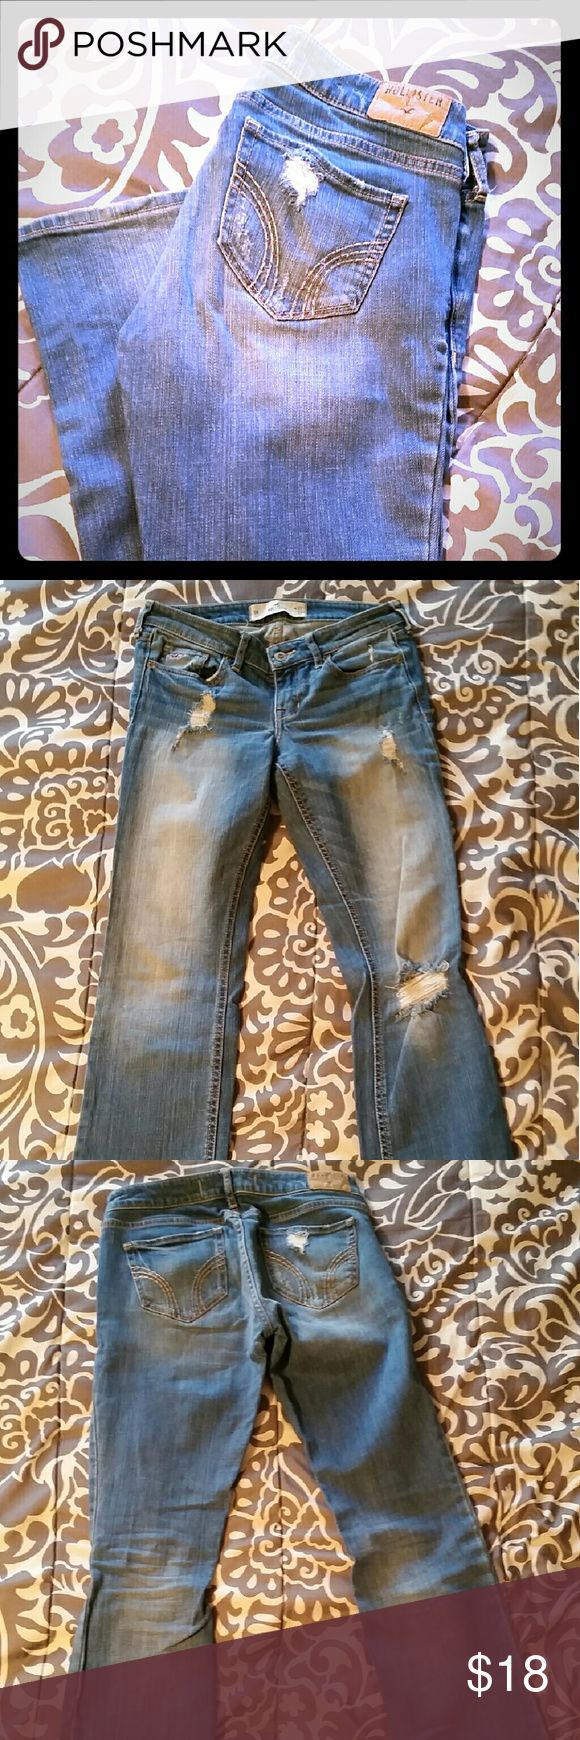 Hollister boot 5R These are boot cut, size 5 regular. The bottoms of them are cut, see pic. All of the holes in the jeans are factory made. Very nice pair of jeans! Hollister Jeans Boot Cut